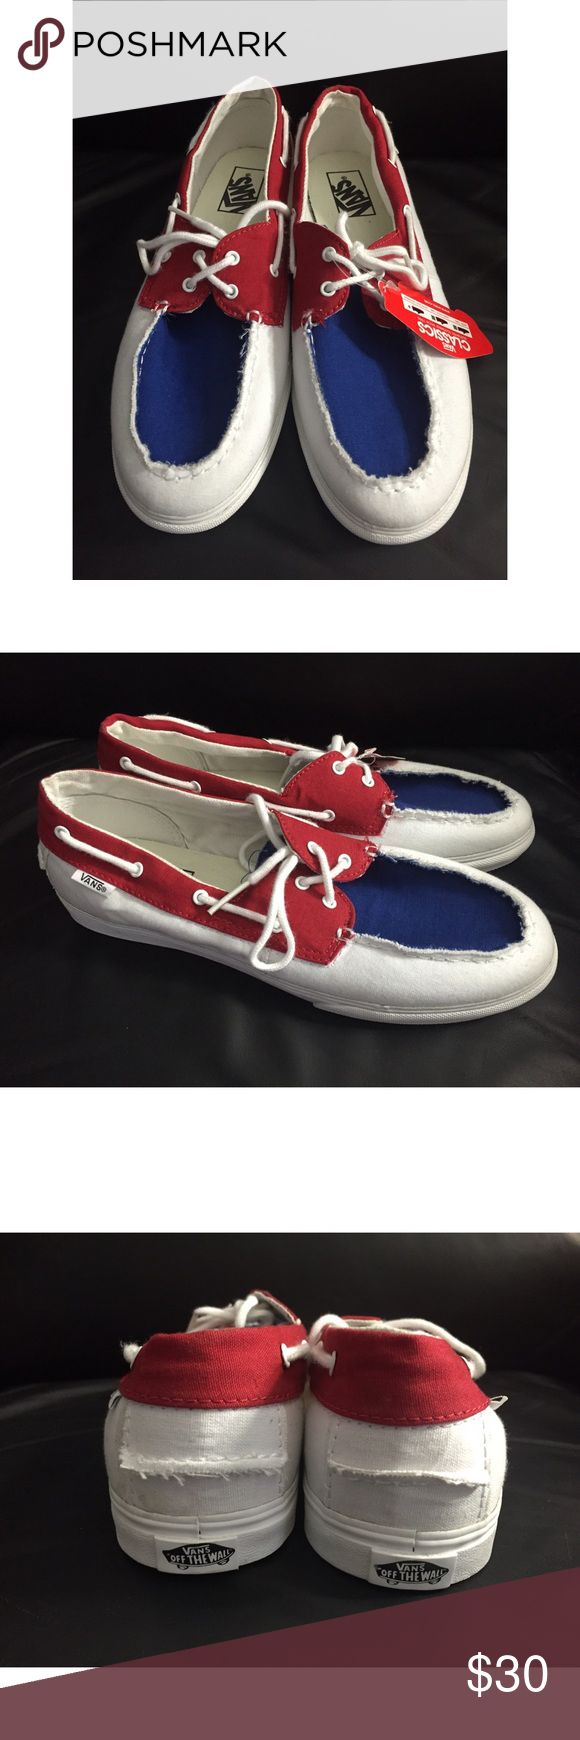 Red White & Blue Vans Boat Shoe NWT Red White & Blue Vans Boat Shoes...Women's Size 8.5 / Men's Size 7...Make An Offer! Vans Shoes Sneakers